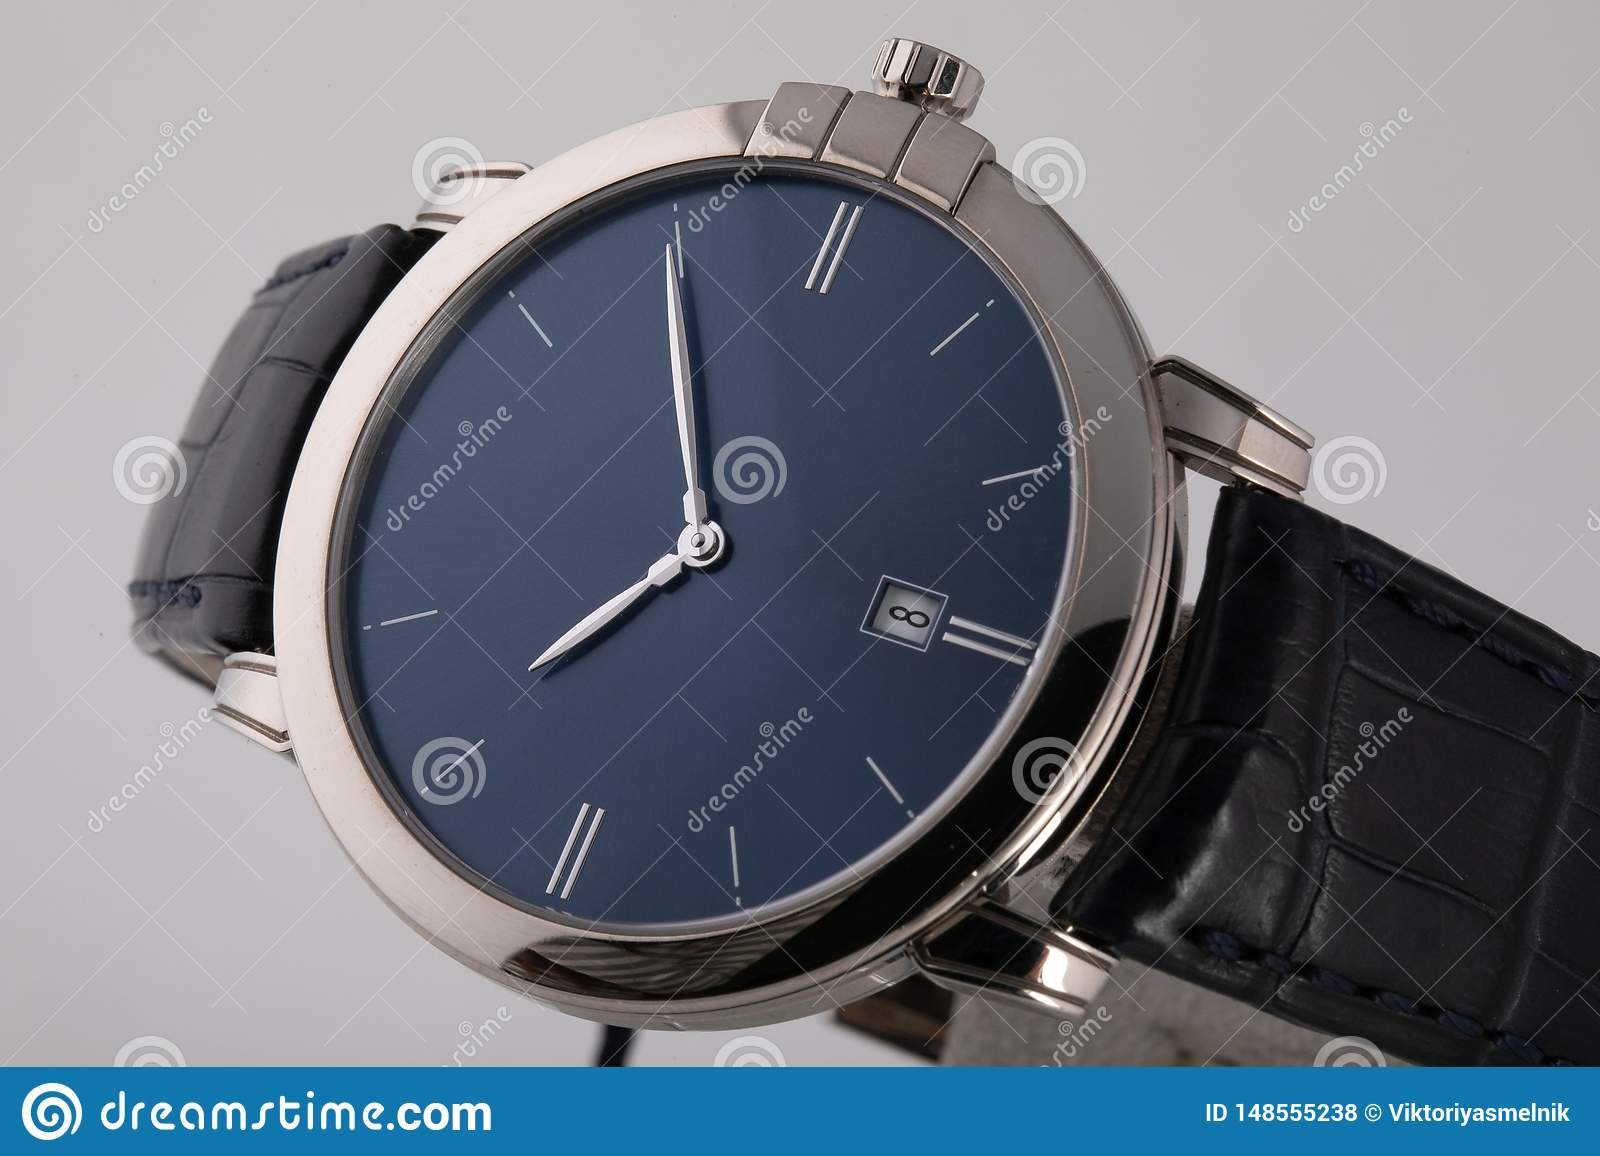 Silver wristwatch with blue dial, silver clockwise, chronograph on black leather strap on white background